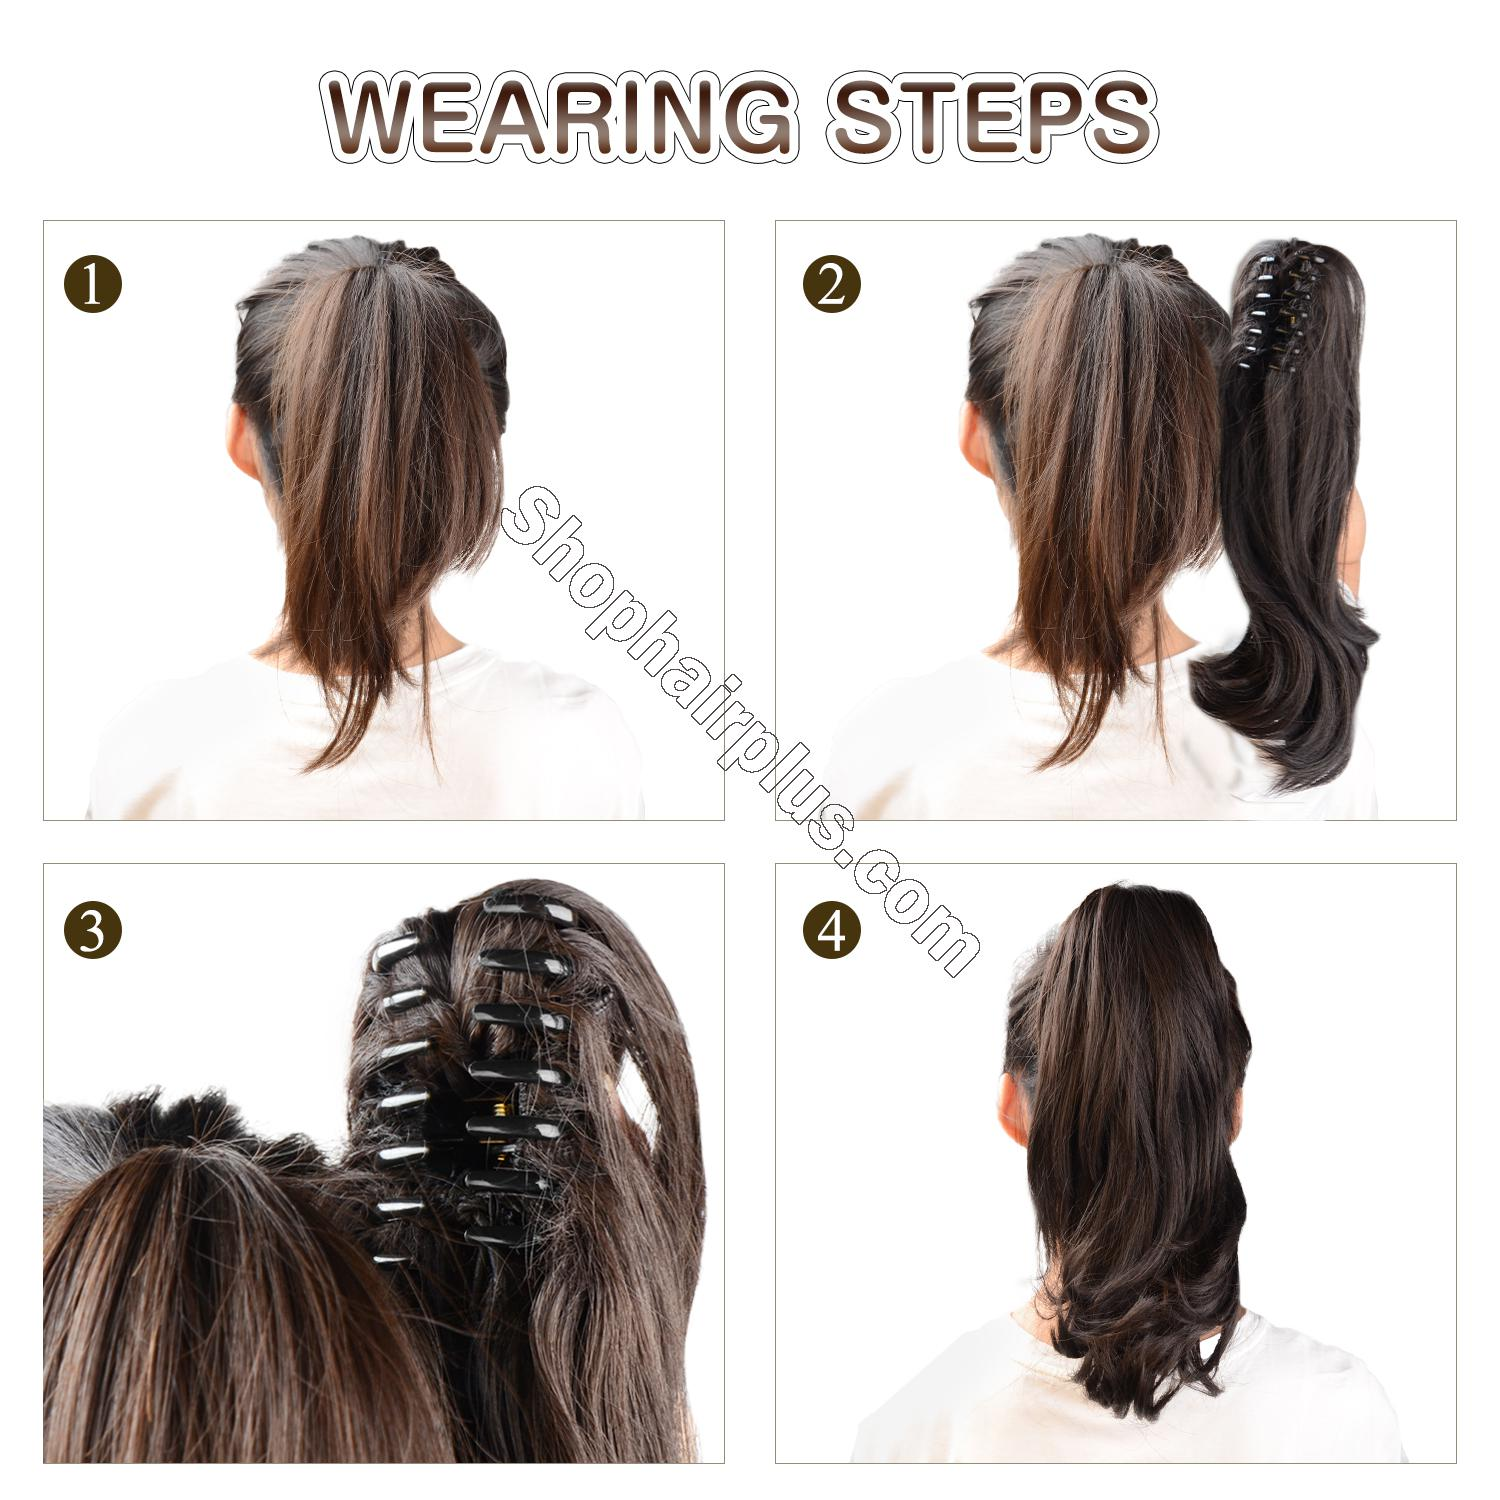 12 - 32 Inch Human Hair Piece Ponytail Extension Drawstring on a Claw Clip Attachment Natural Looking for Women Loose Wave #1B 3